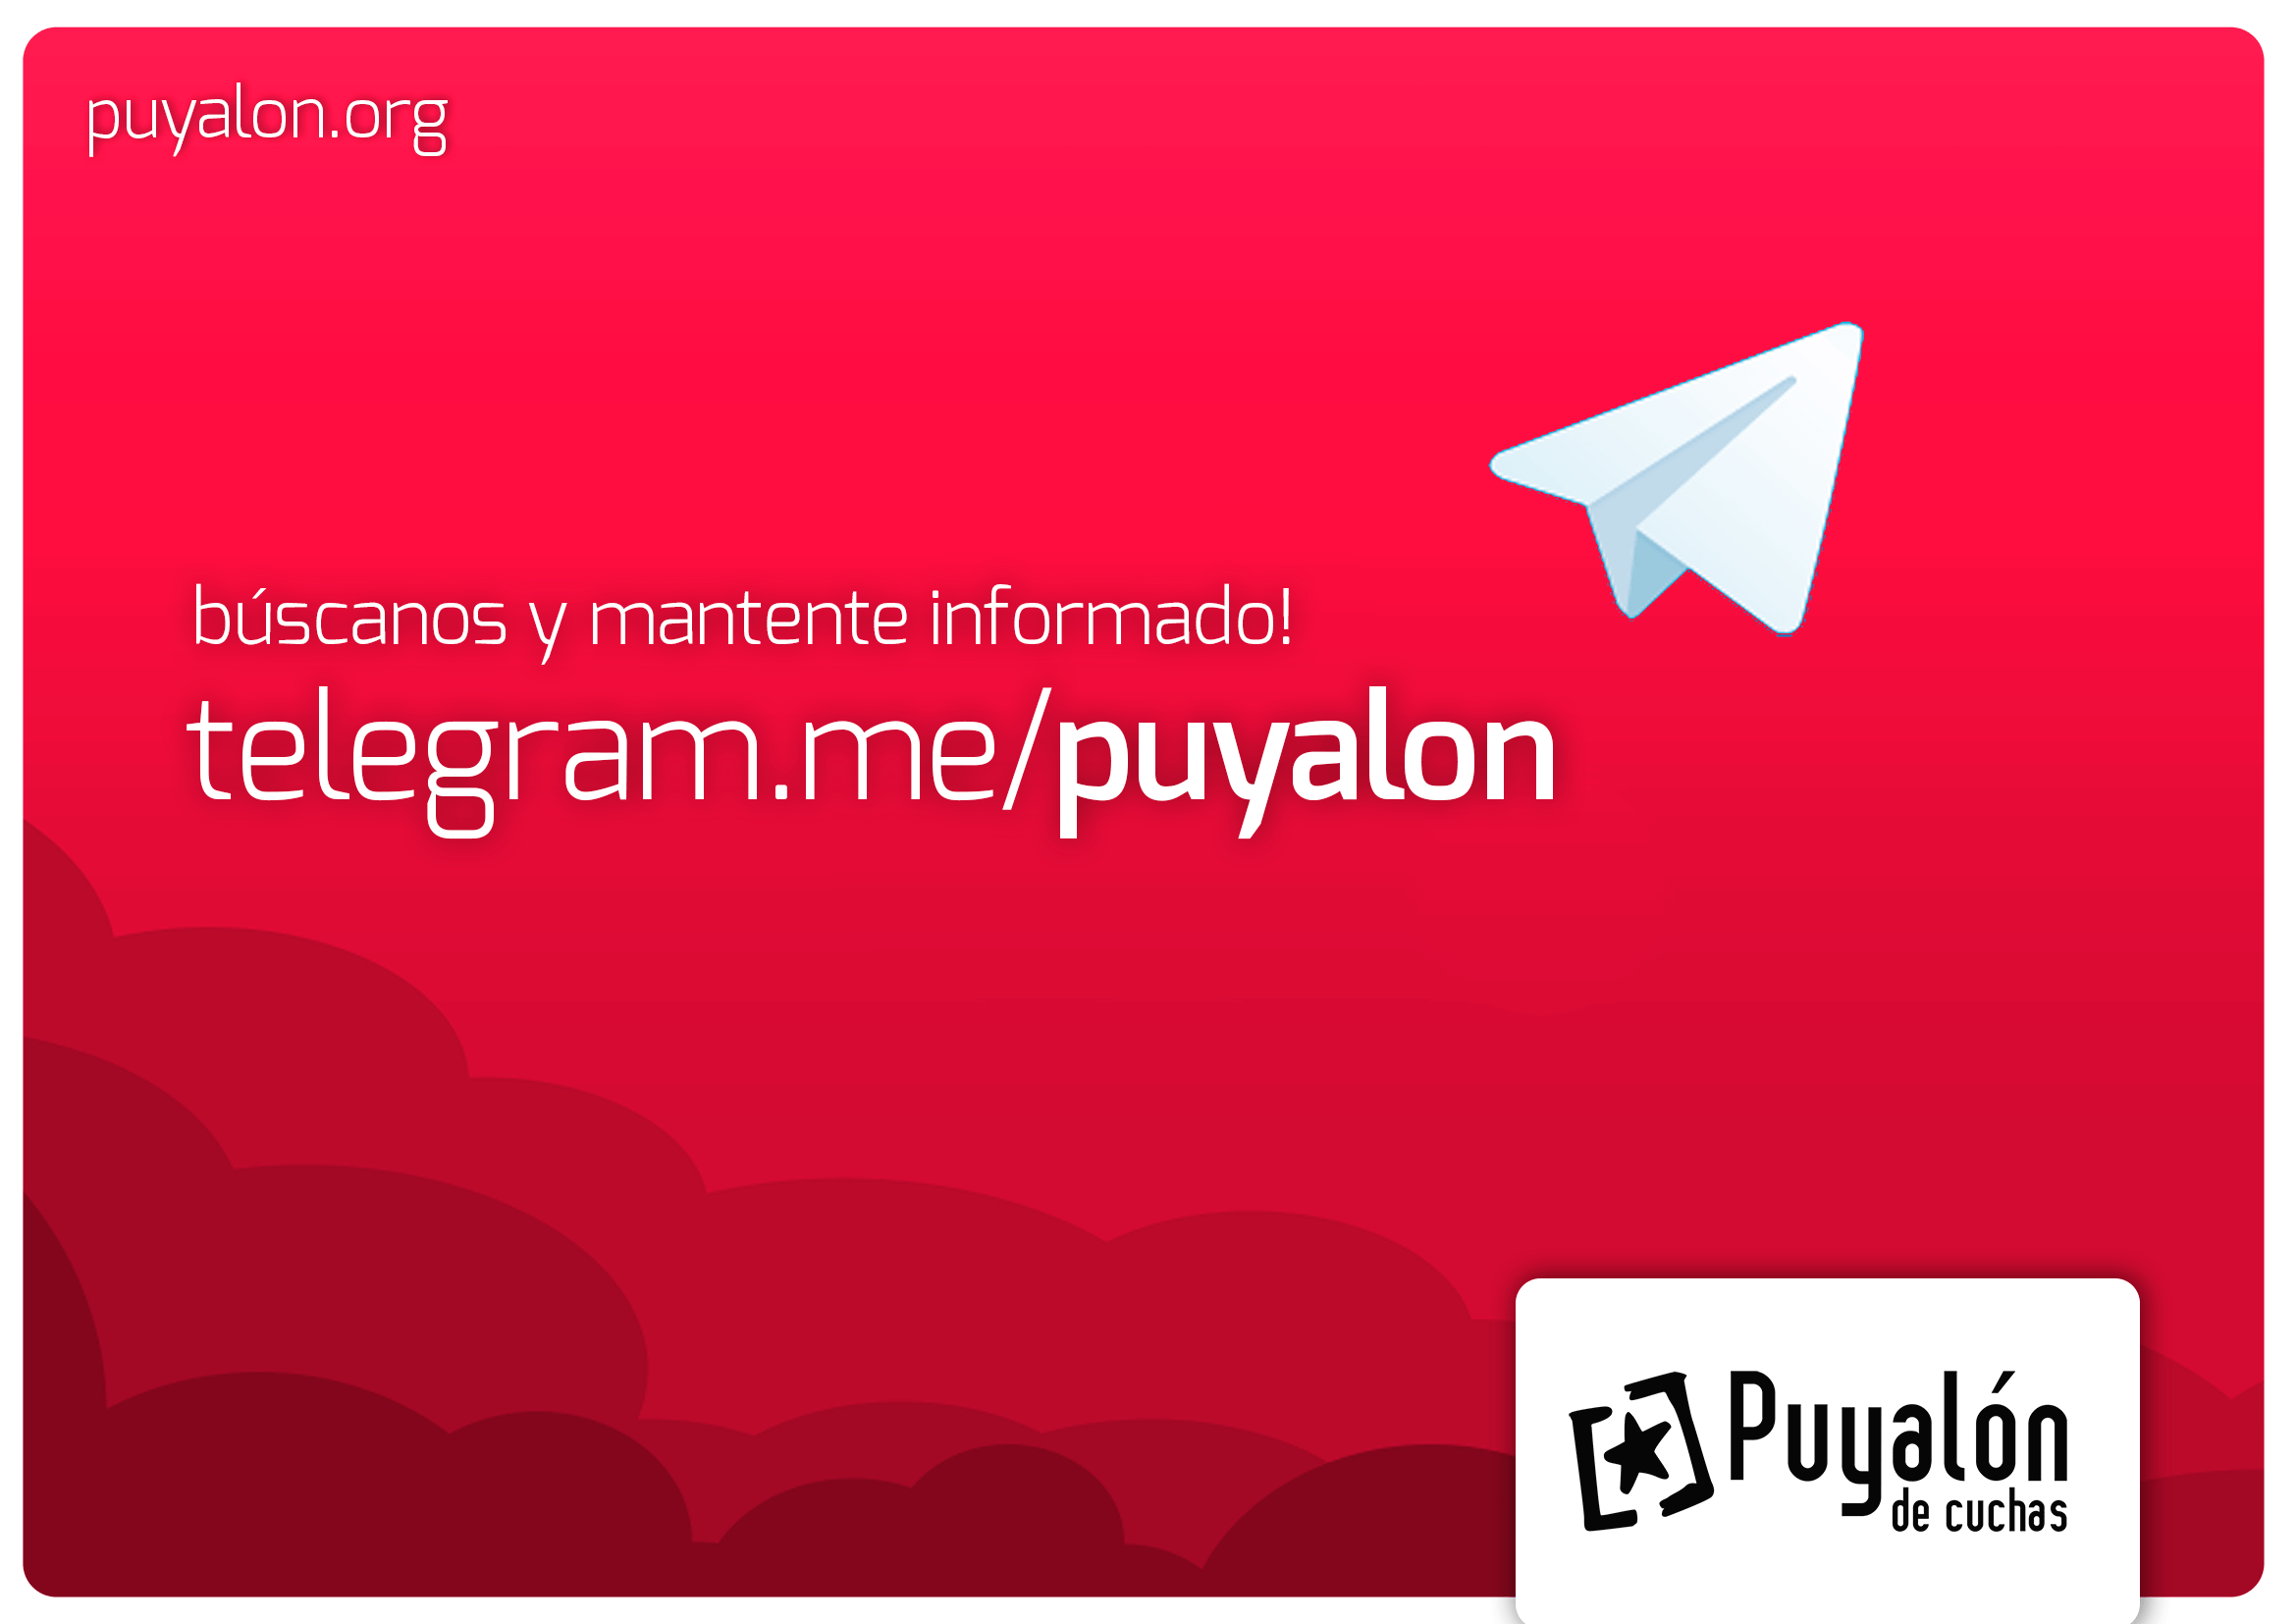 telegram puyalon